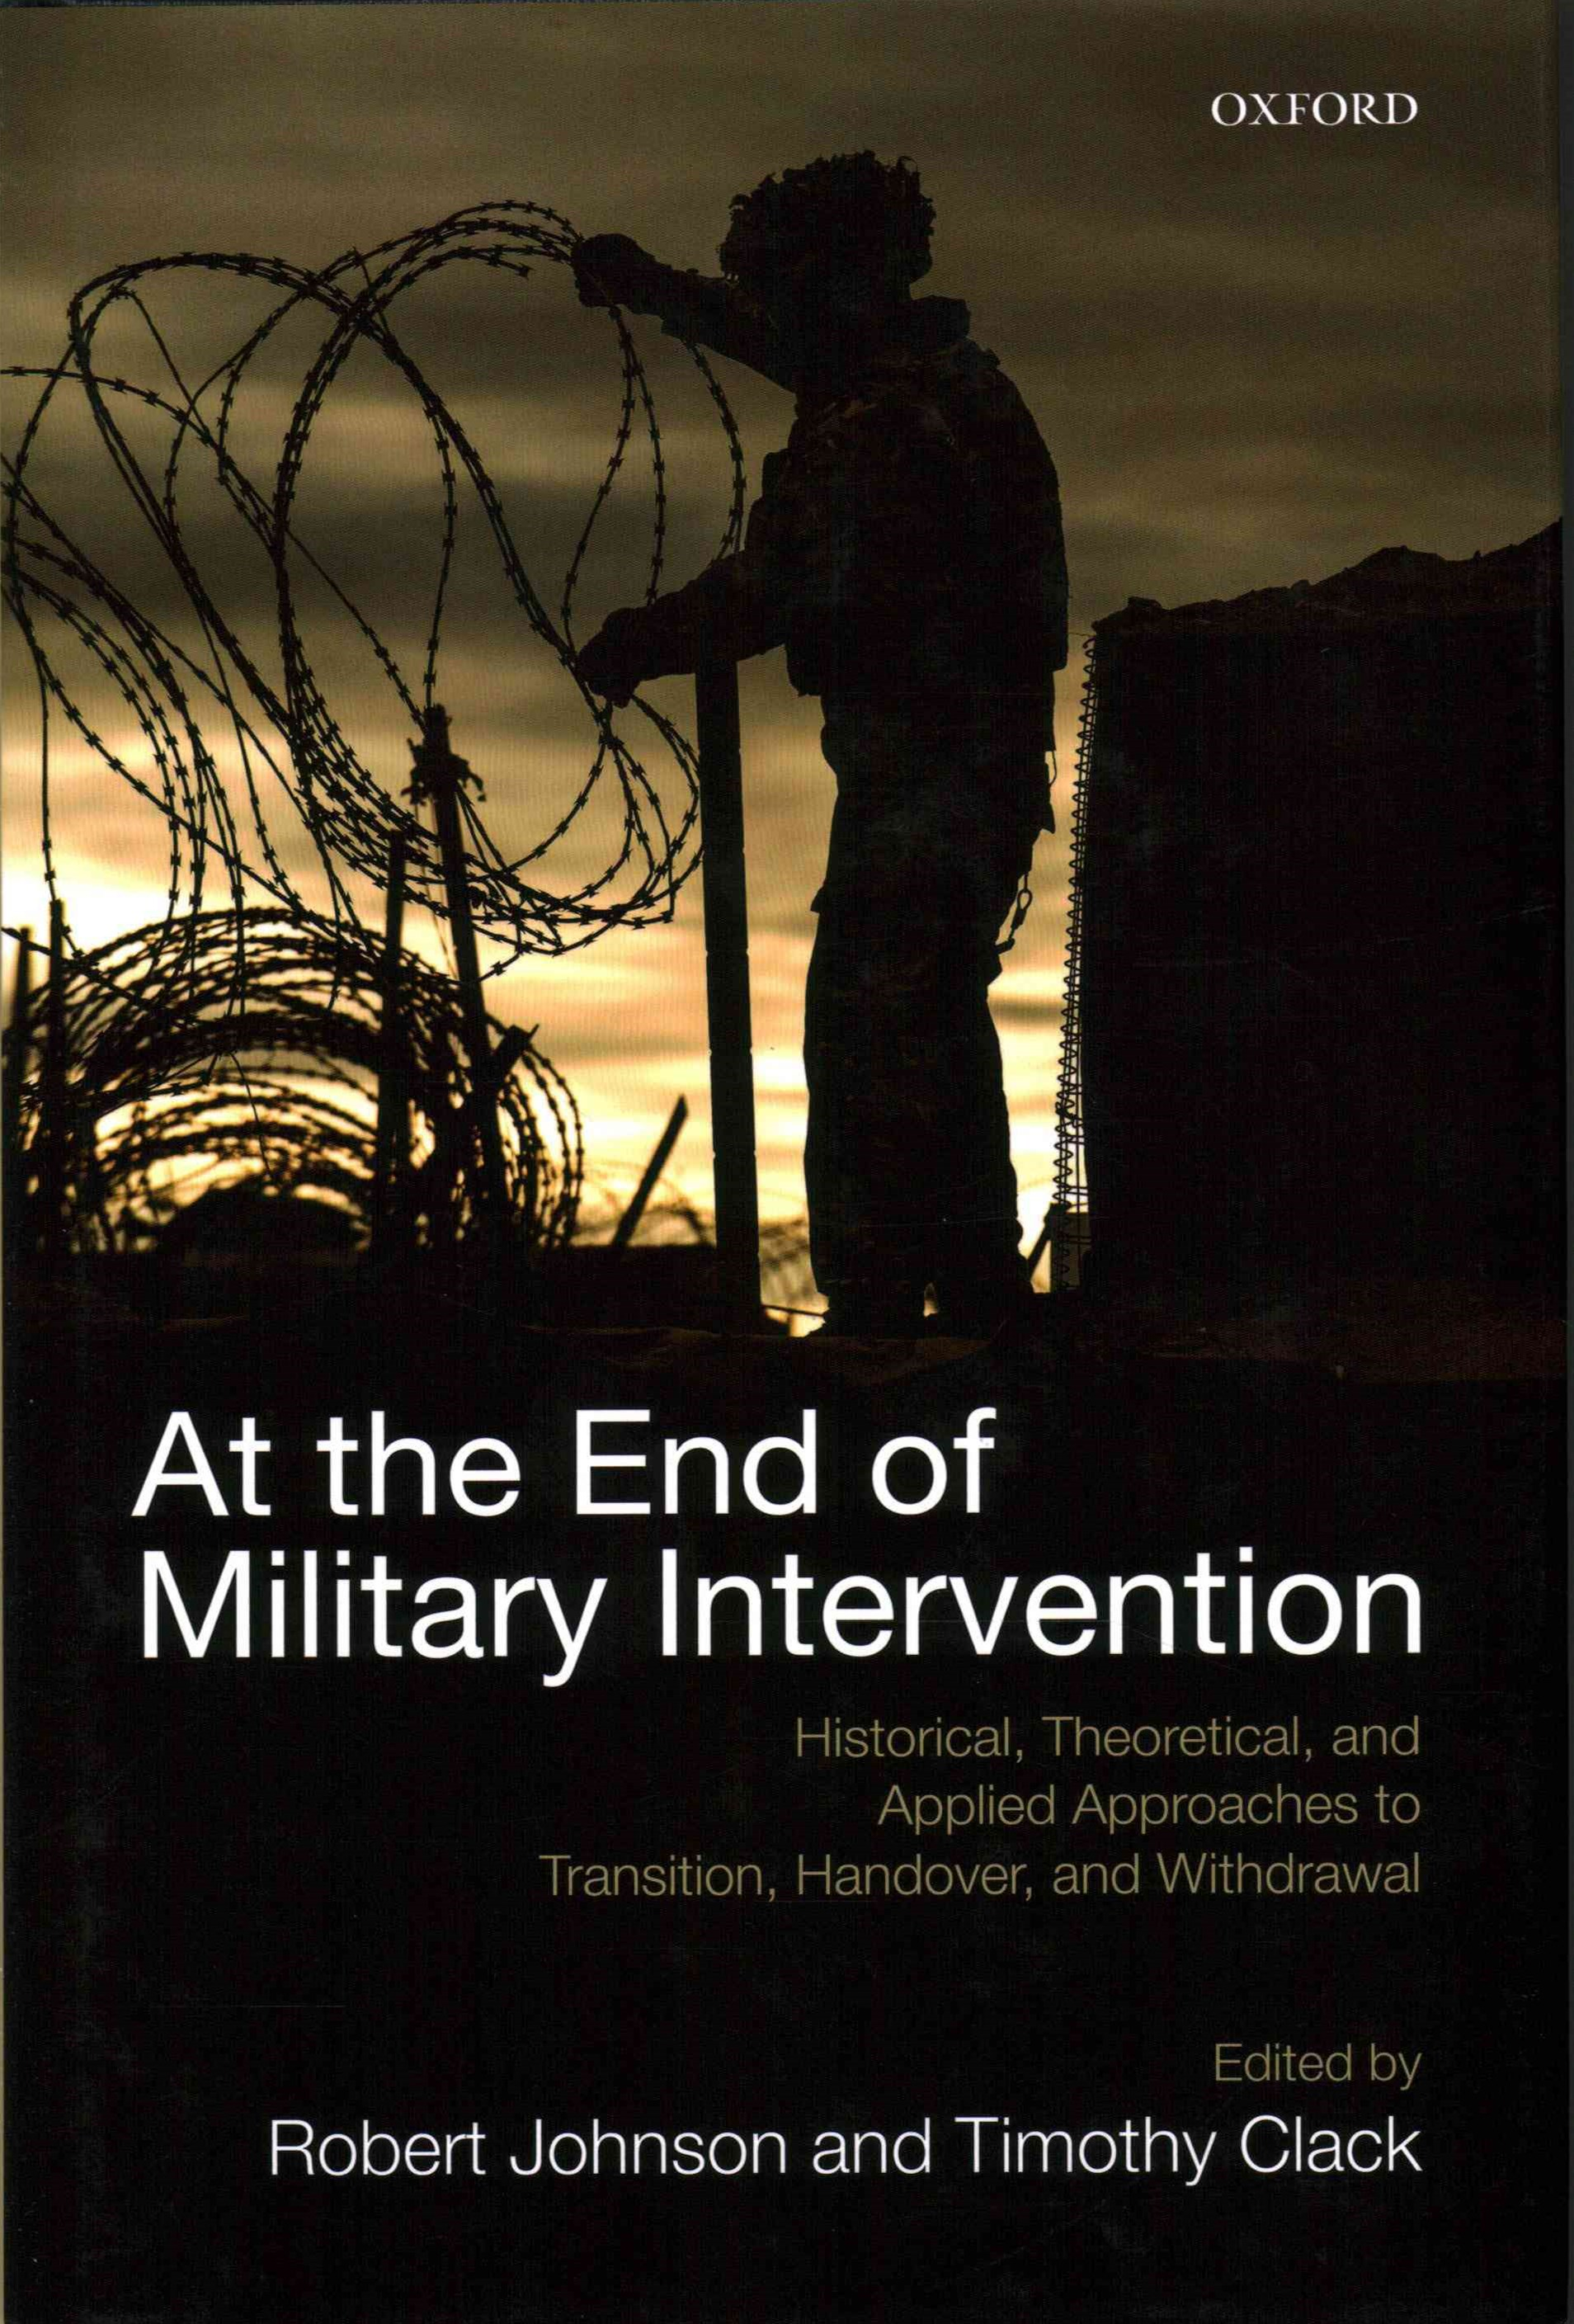 At the End of Military Intervention: Historical, Theoretical and Applied